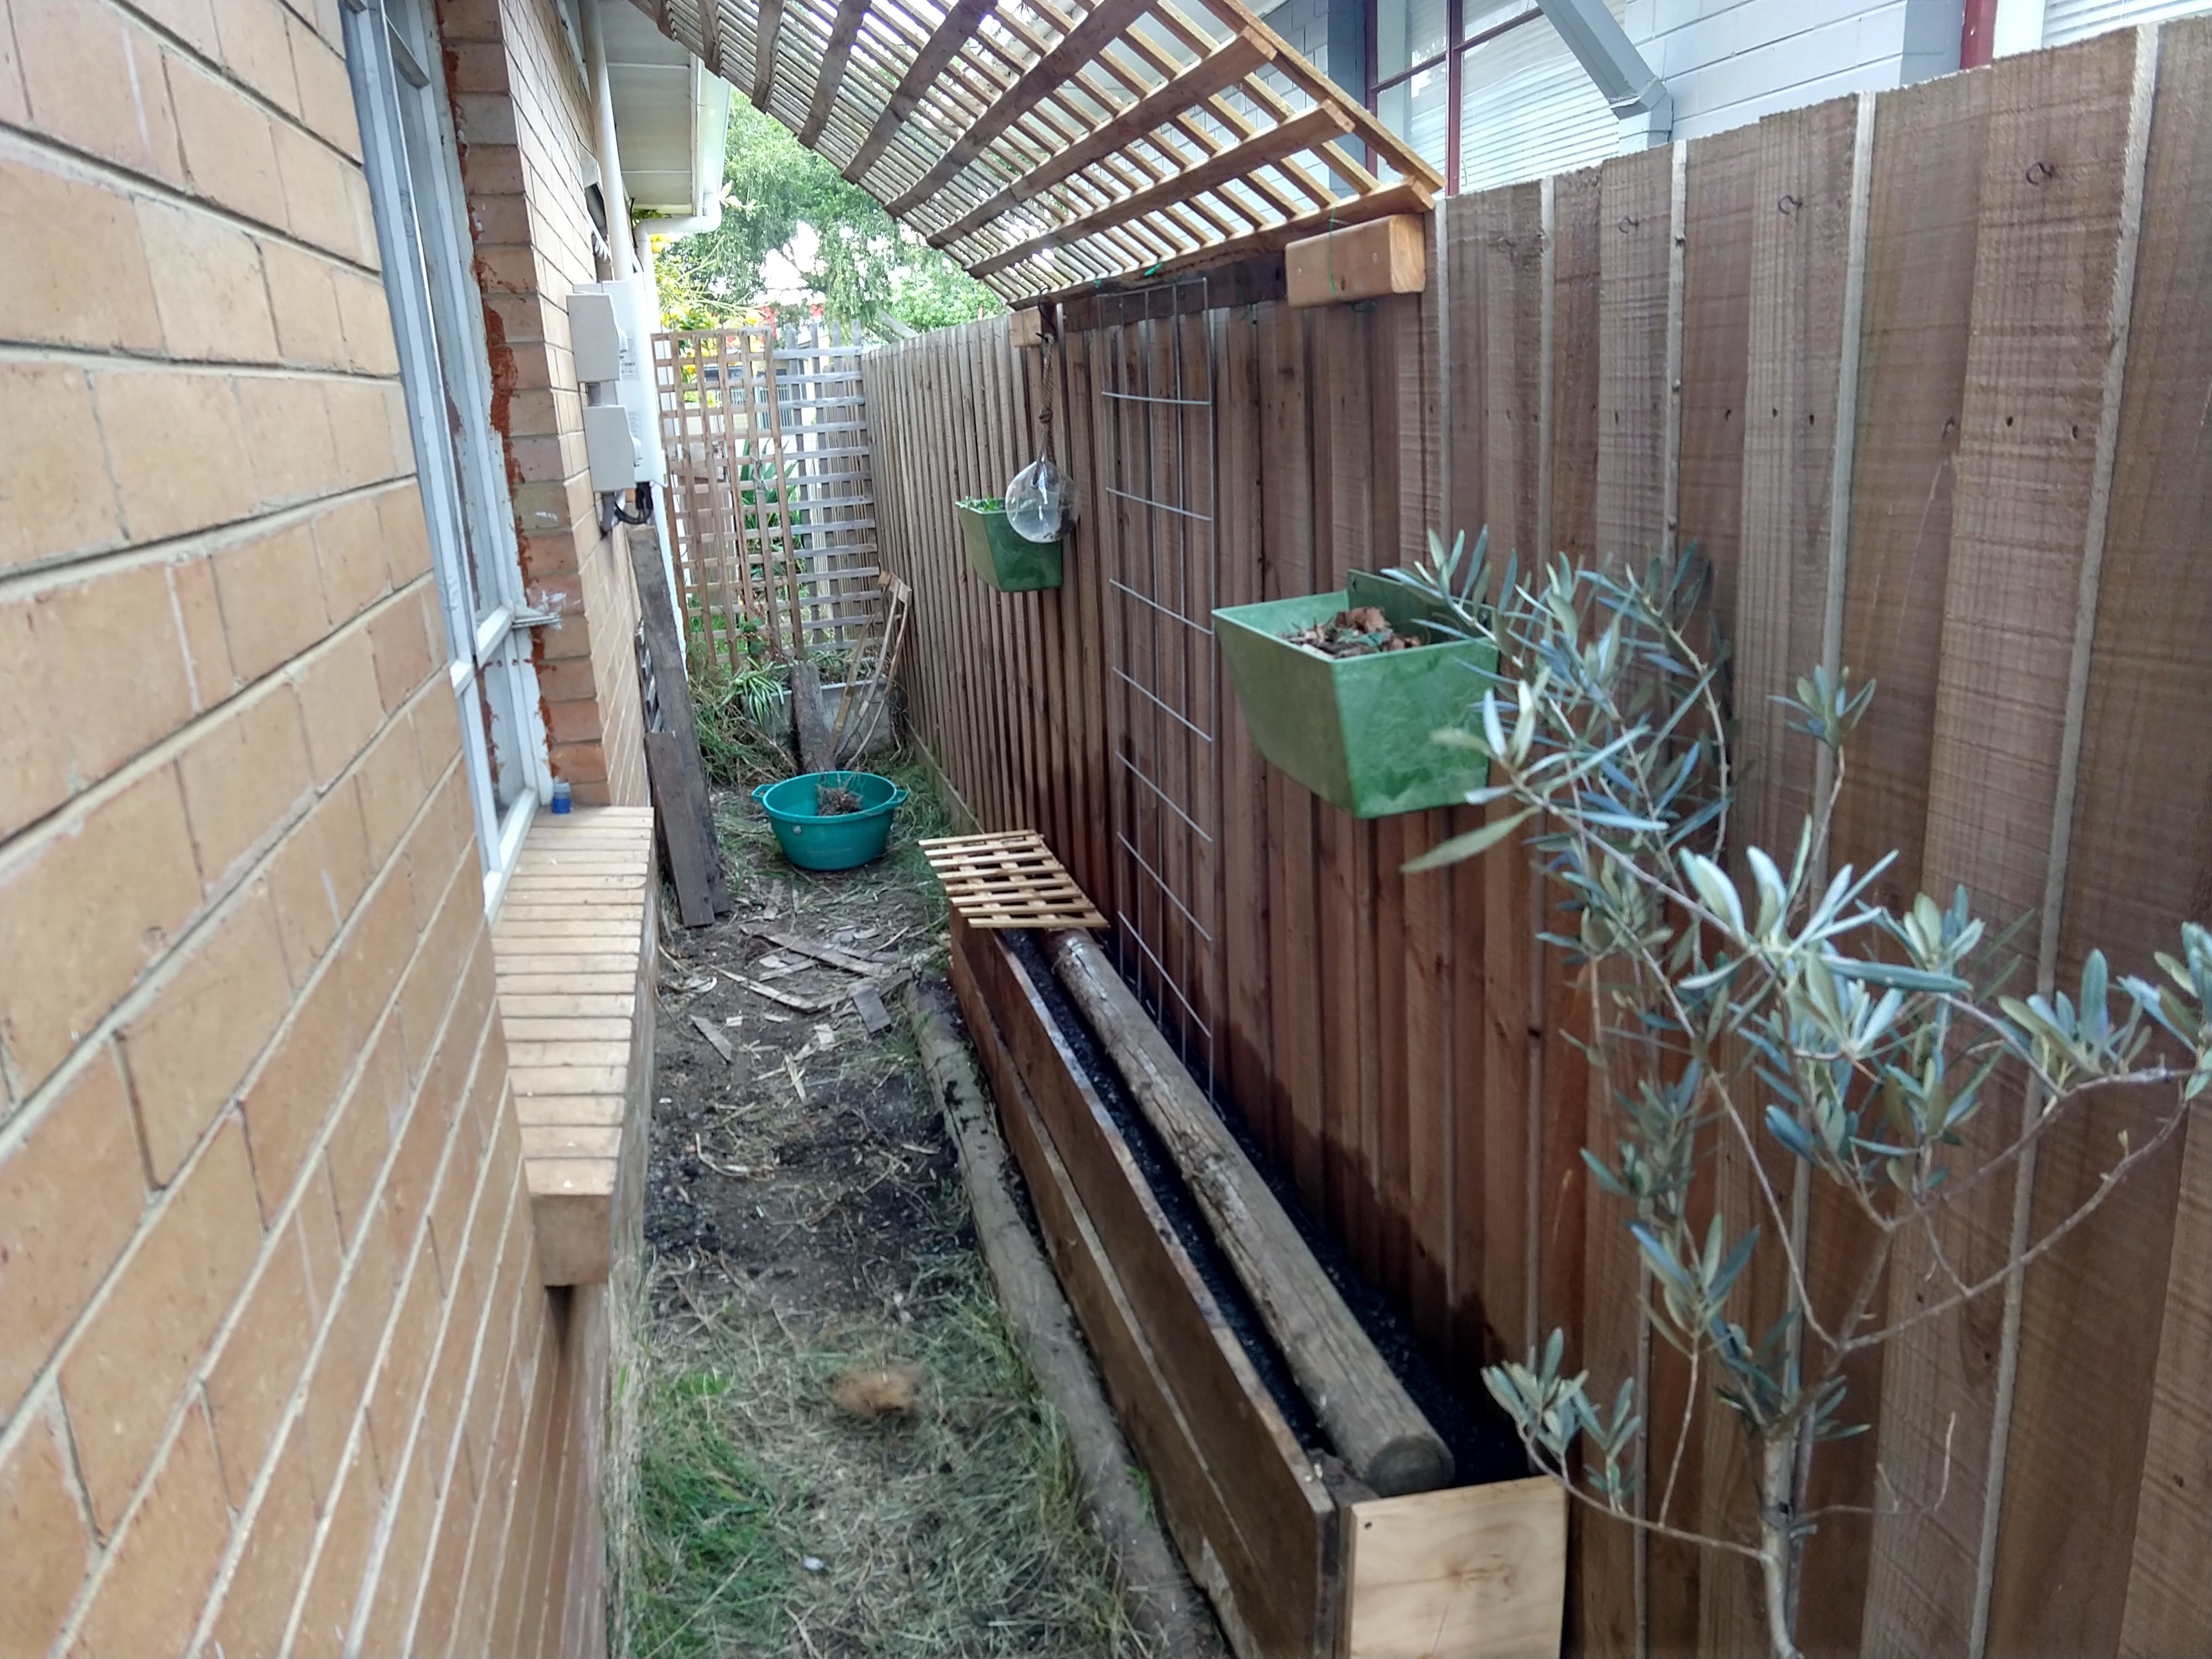 A garden bed built up against a wooden fence down the side of a house